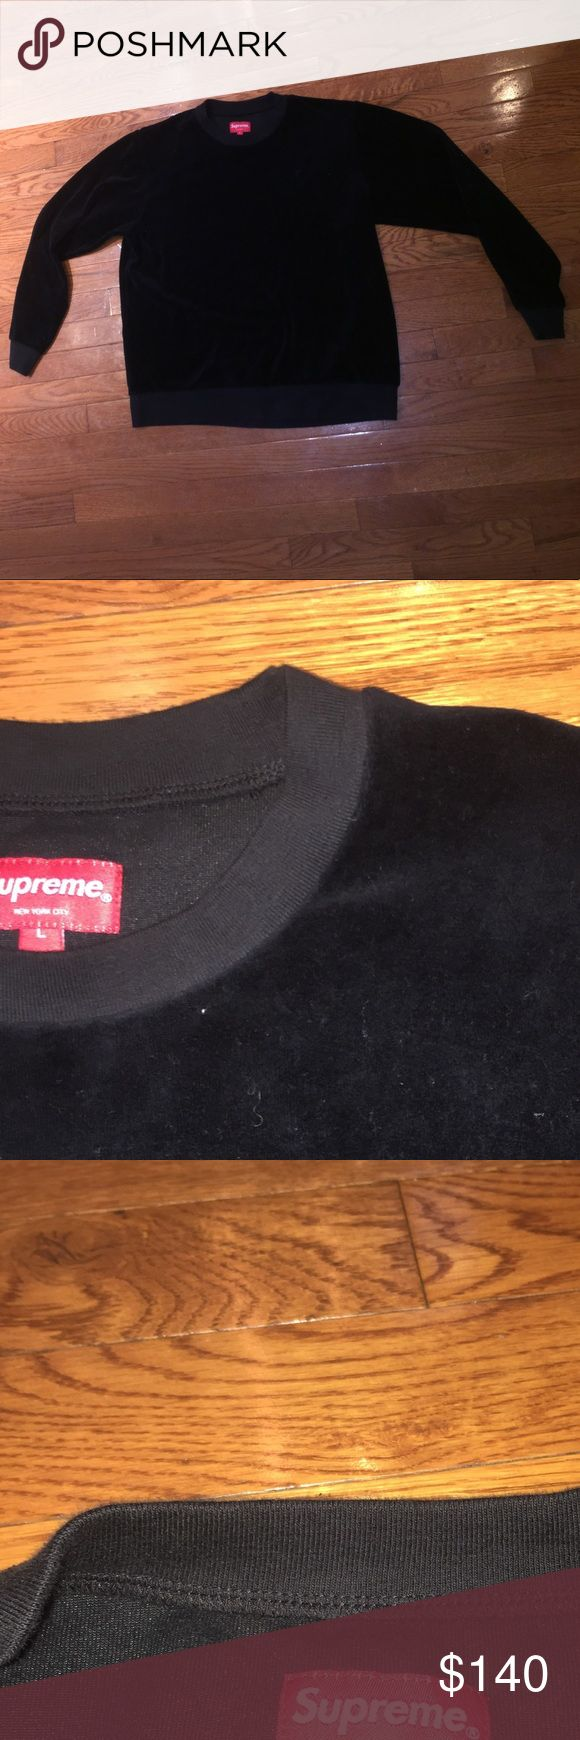 Supreme Velour Sweater Sweatshirt Authentic Almost New Supreme Sweater Sweatshirt. Only Worn A Few Times. Part Of The Fall 2016 Supreme Collection. Fits A Little Small. Supreme Shirts Sweatshirts & Hoodies